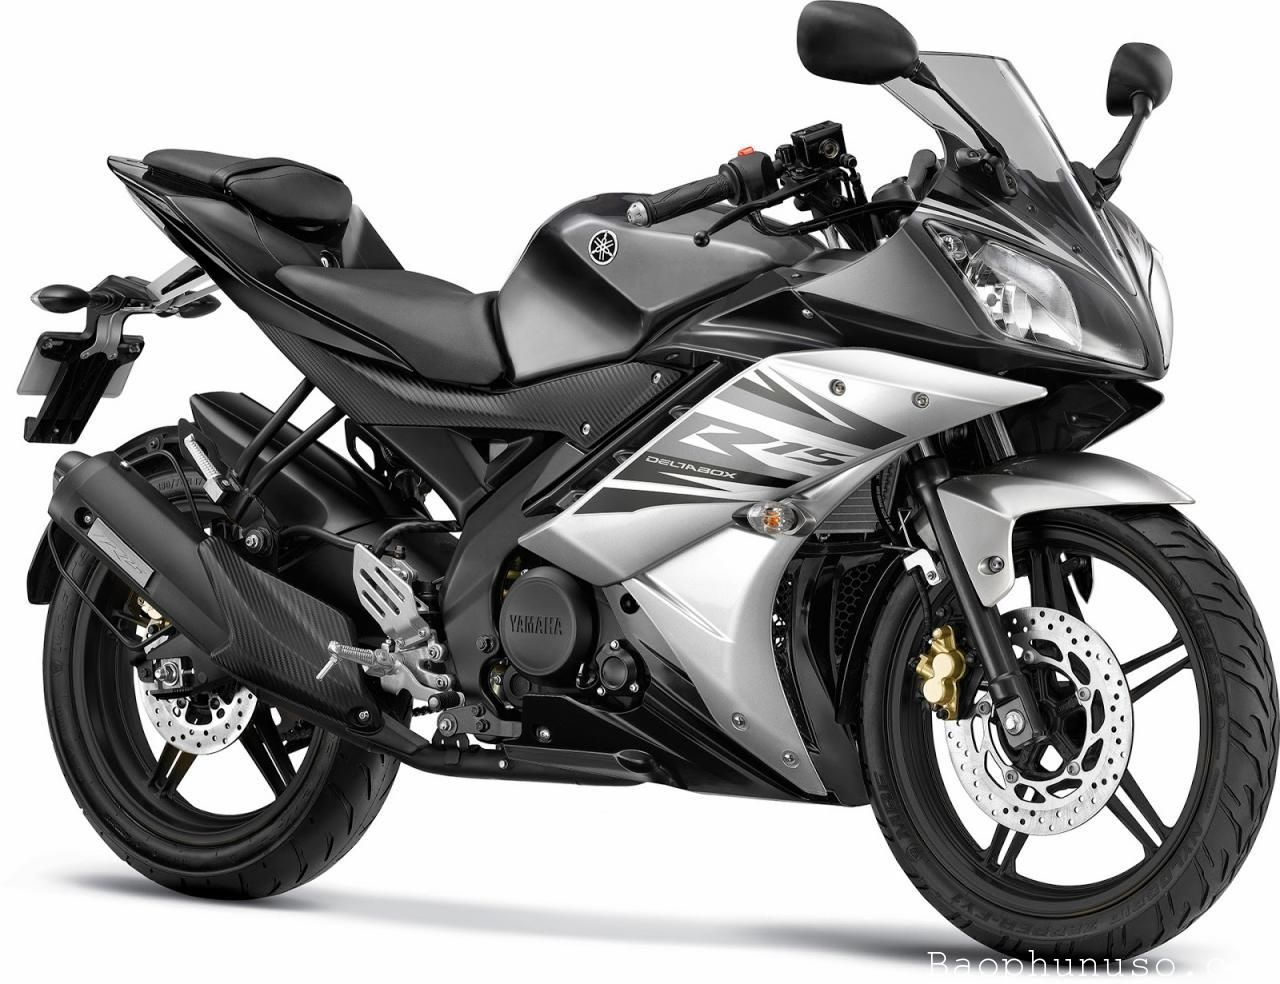 http://baophunuso.vn/wp-content/uploads/2016/03/danh-gia-xe-yamaha-r15-3-0-2015-hinh-anh-gia-ban-moi-nhat-1.jpg